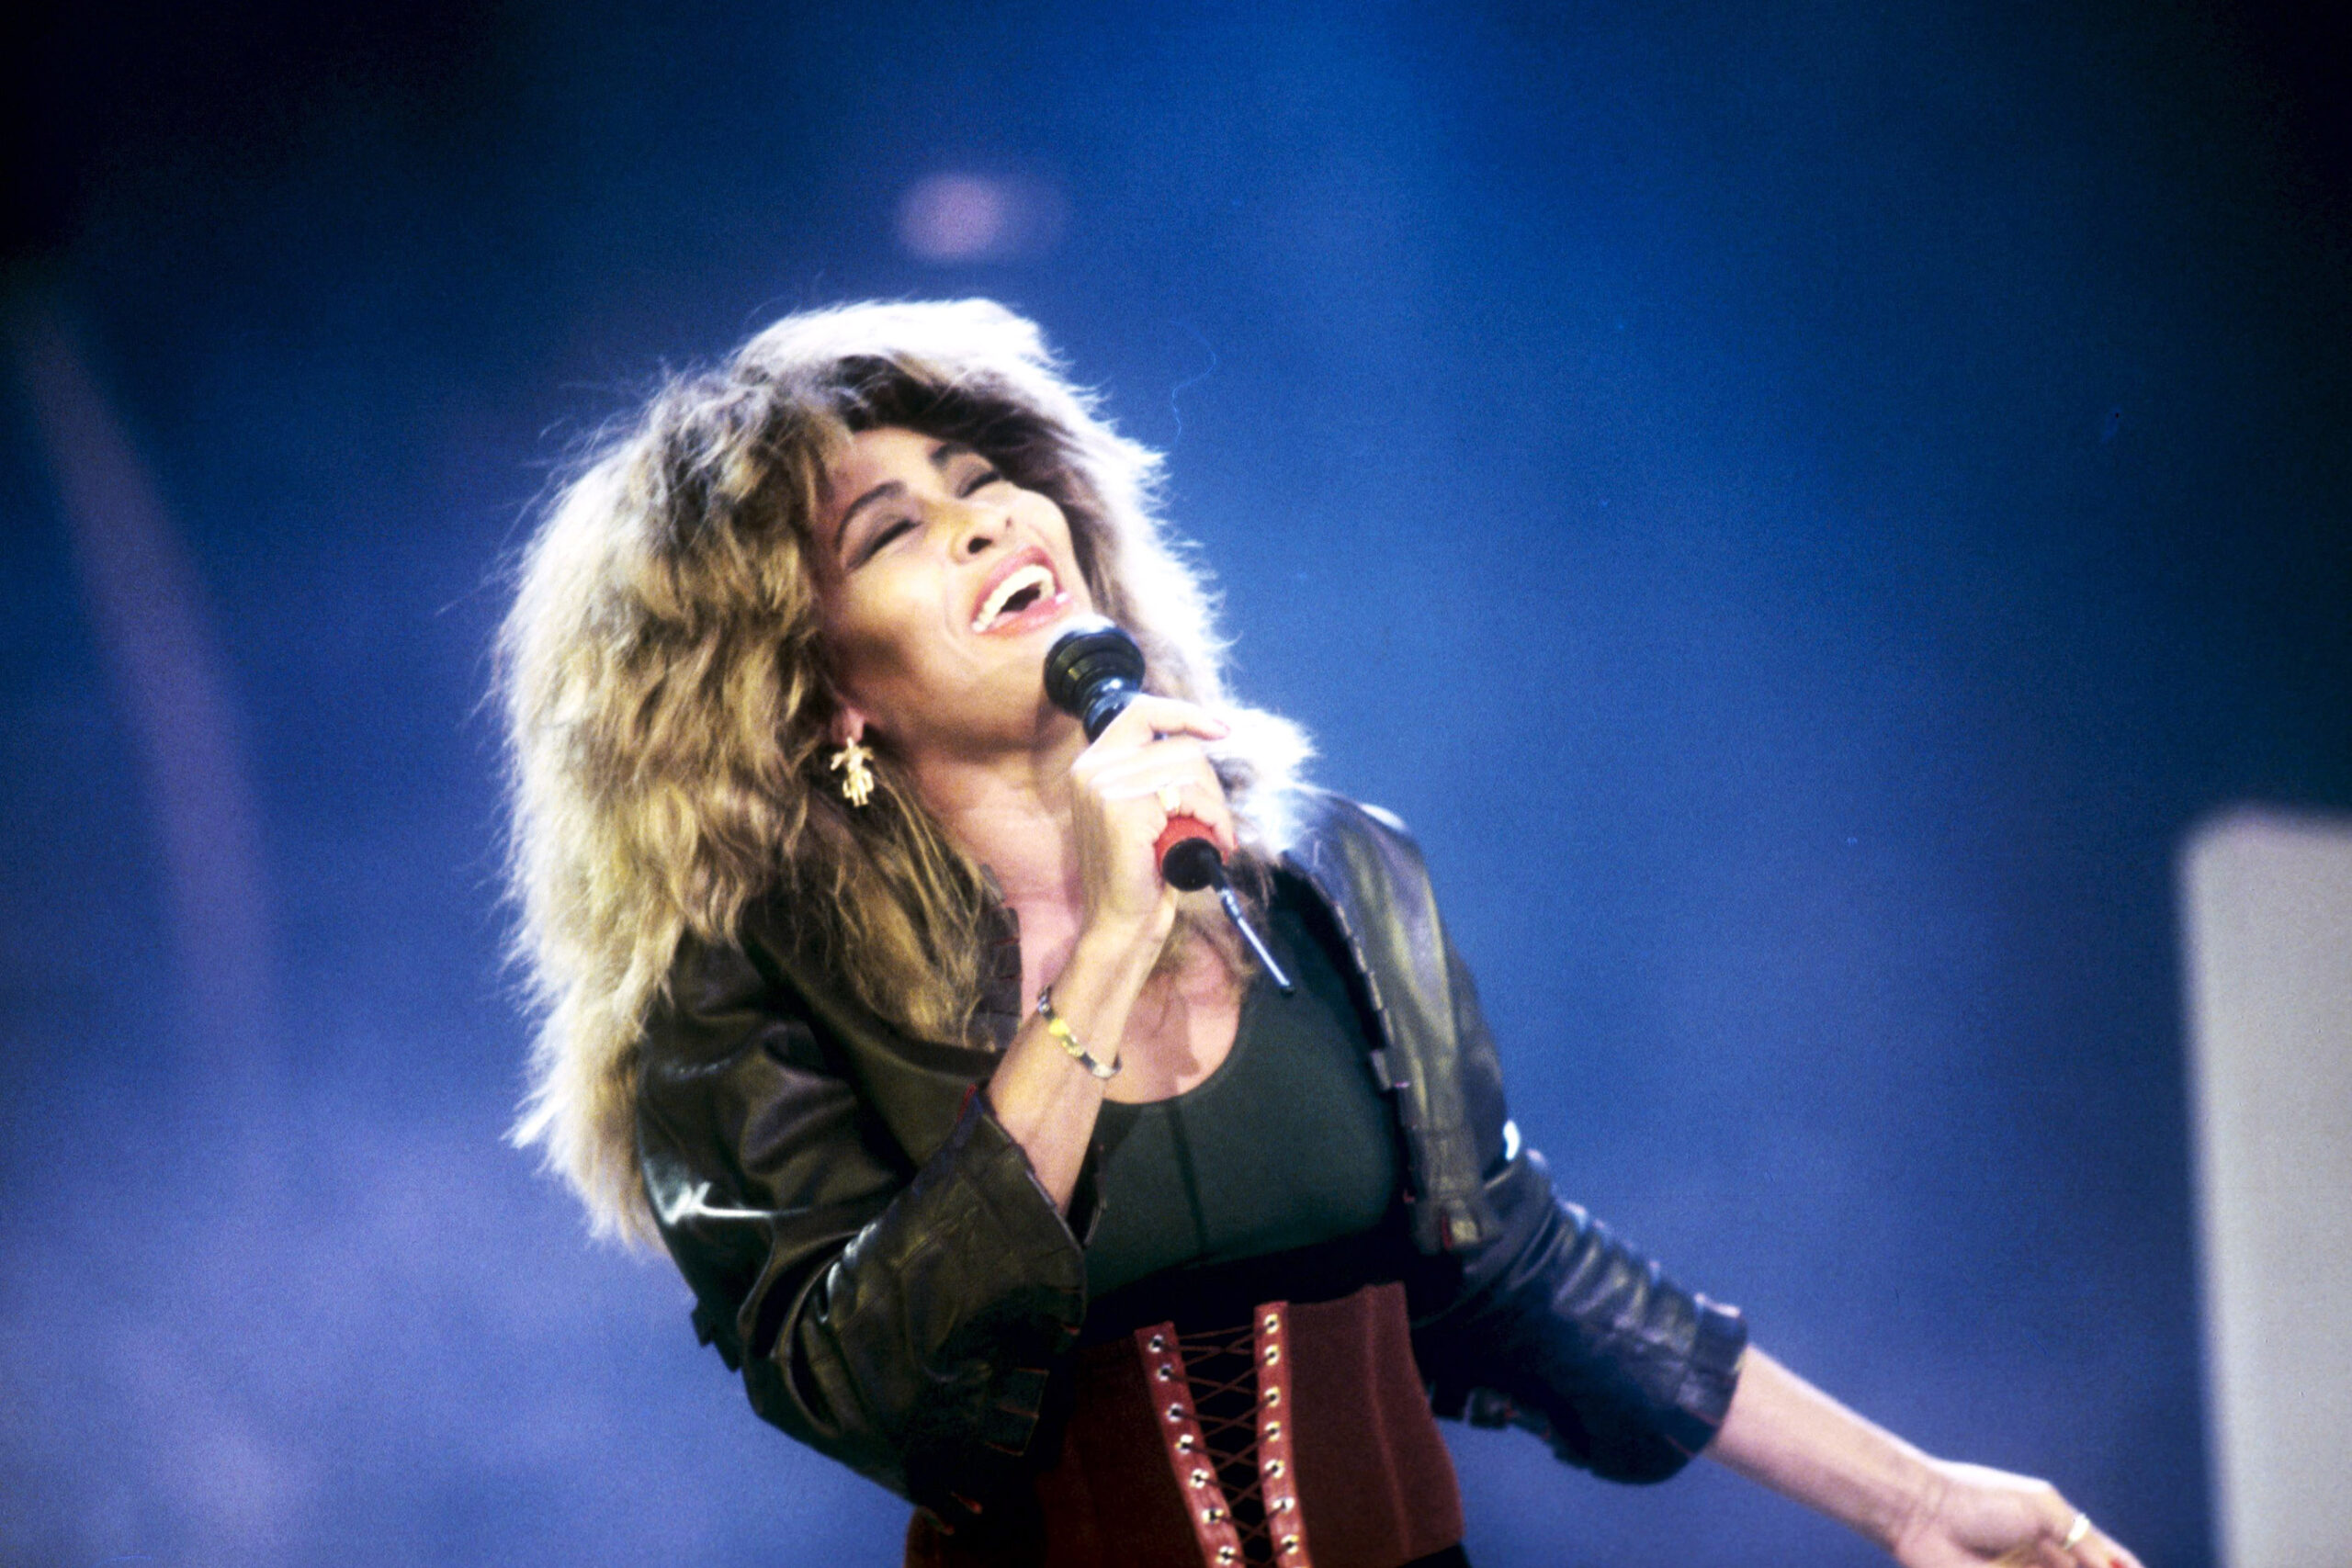 Tina Turner Tells All and Bids Farewell In New Documentary